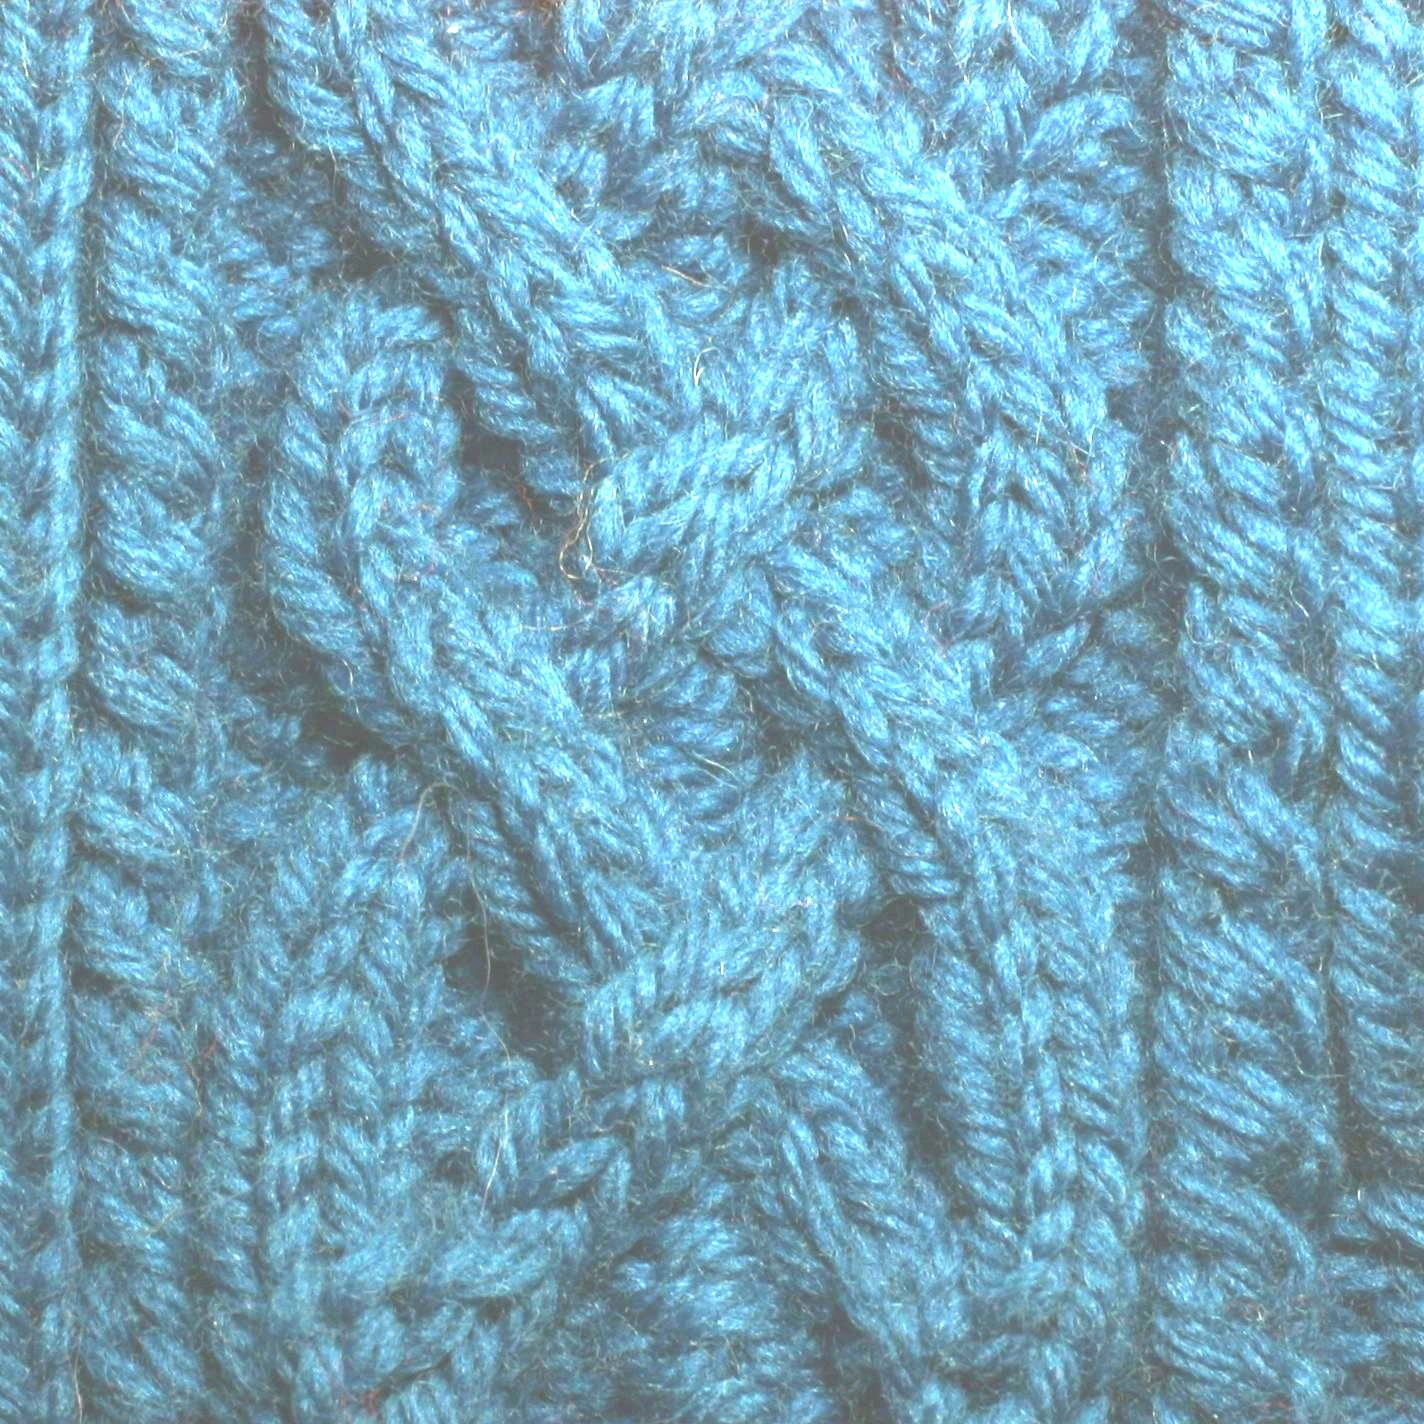 Cable Knit Pattern Free : Original file ? (1,424   1,424 pixels, file size: 400 KB, MIME type ...